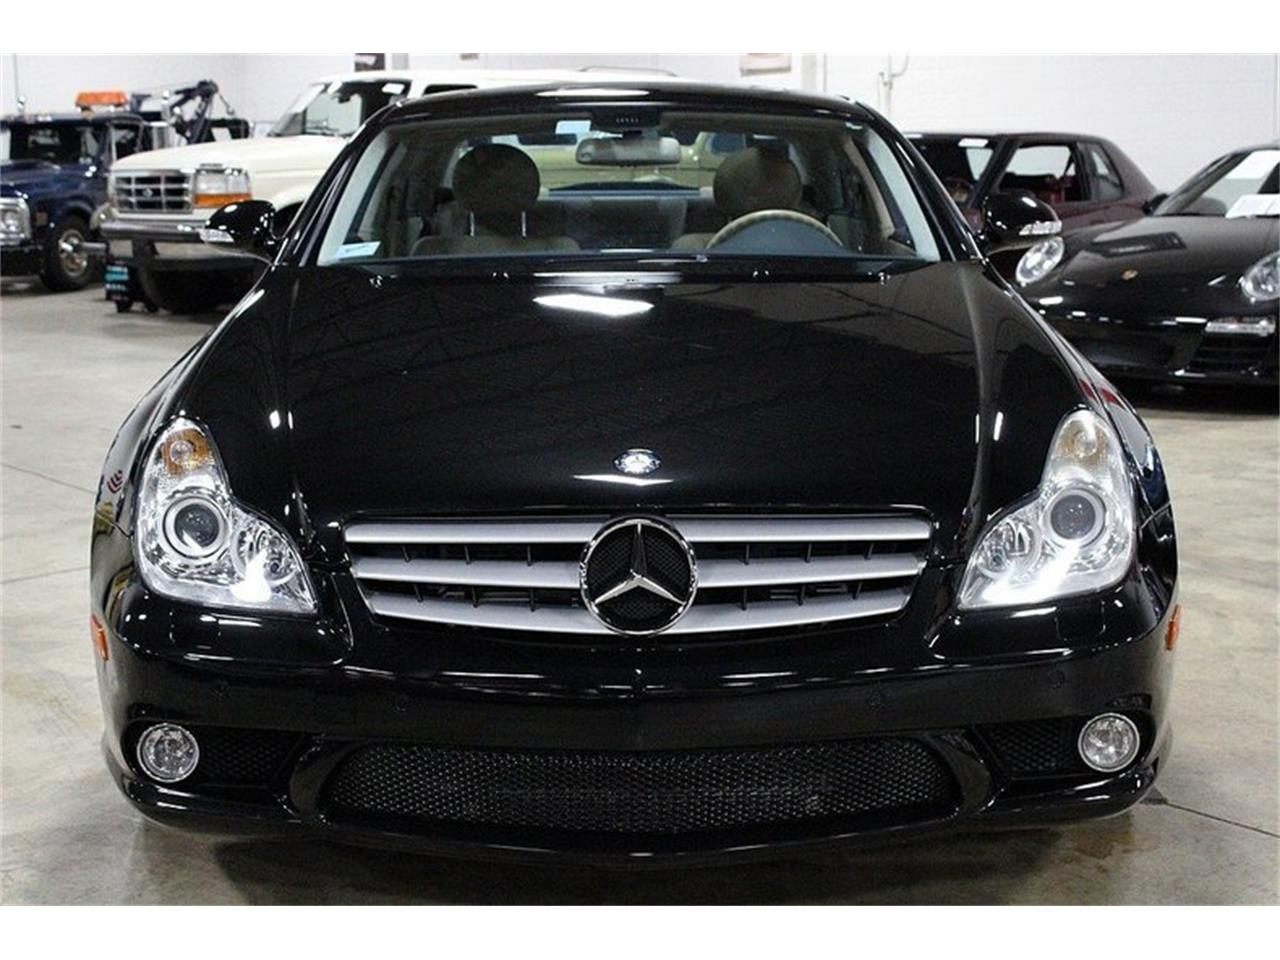 In House Financing Car Dealers >> 2006 Mercedes-Benz CLS55 AMG for Sale | ClassicCars.com ...